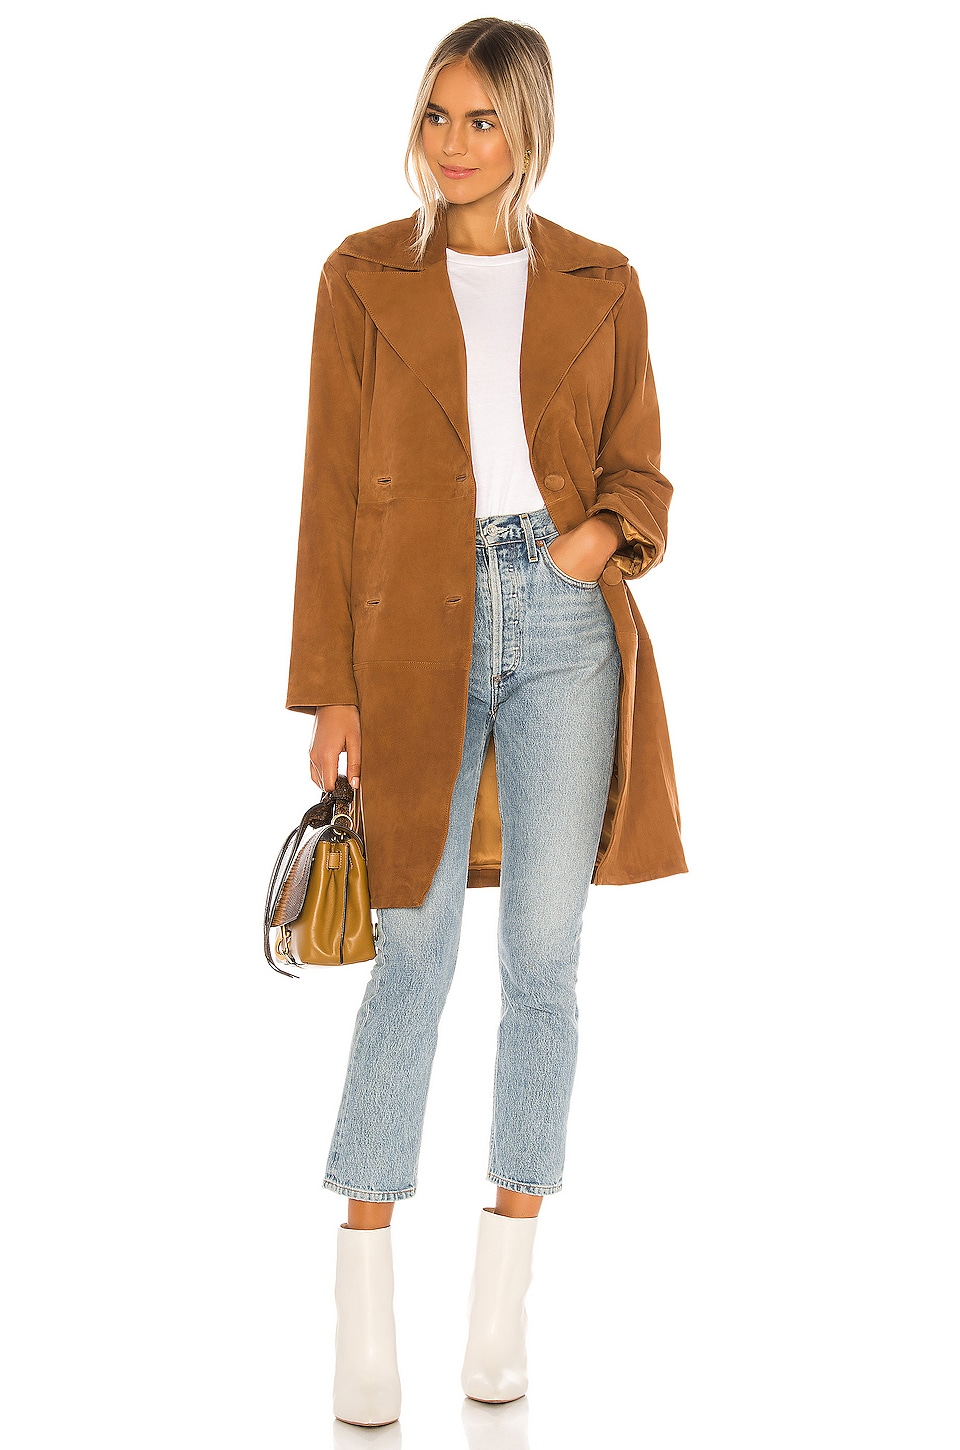 Song of Style Song Leather Trench Coat in Warm Tobacco